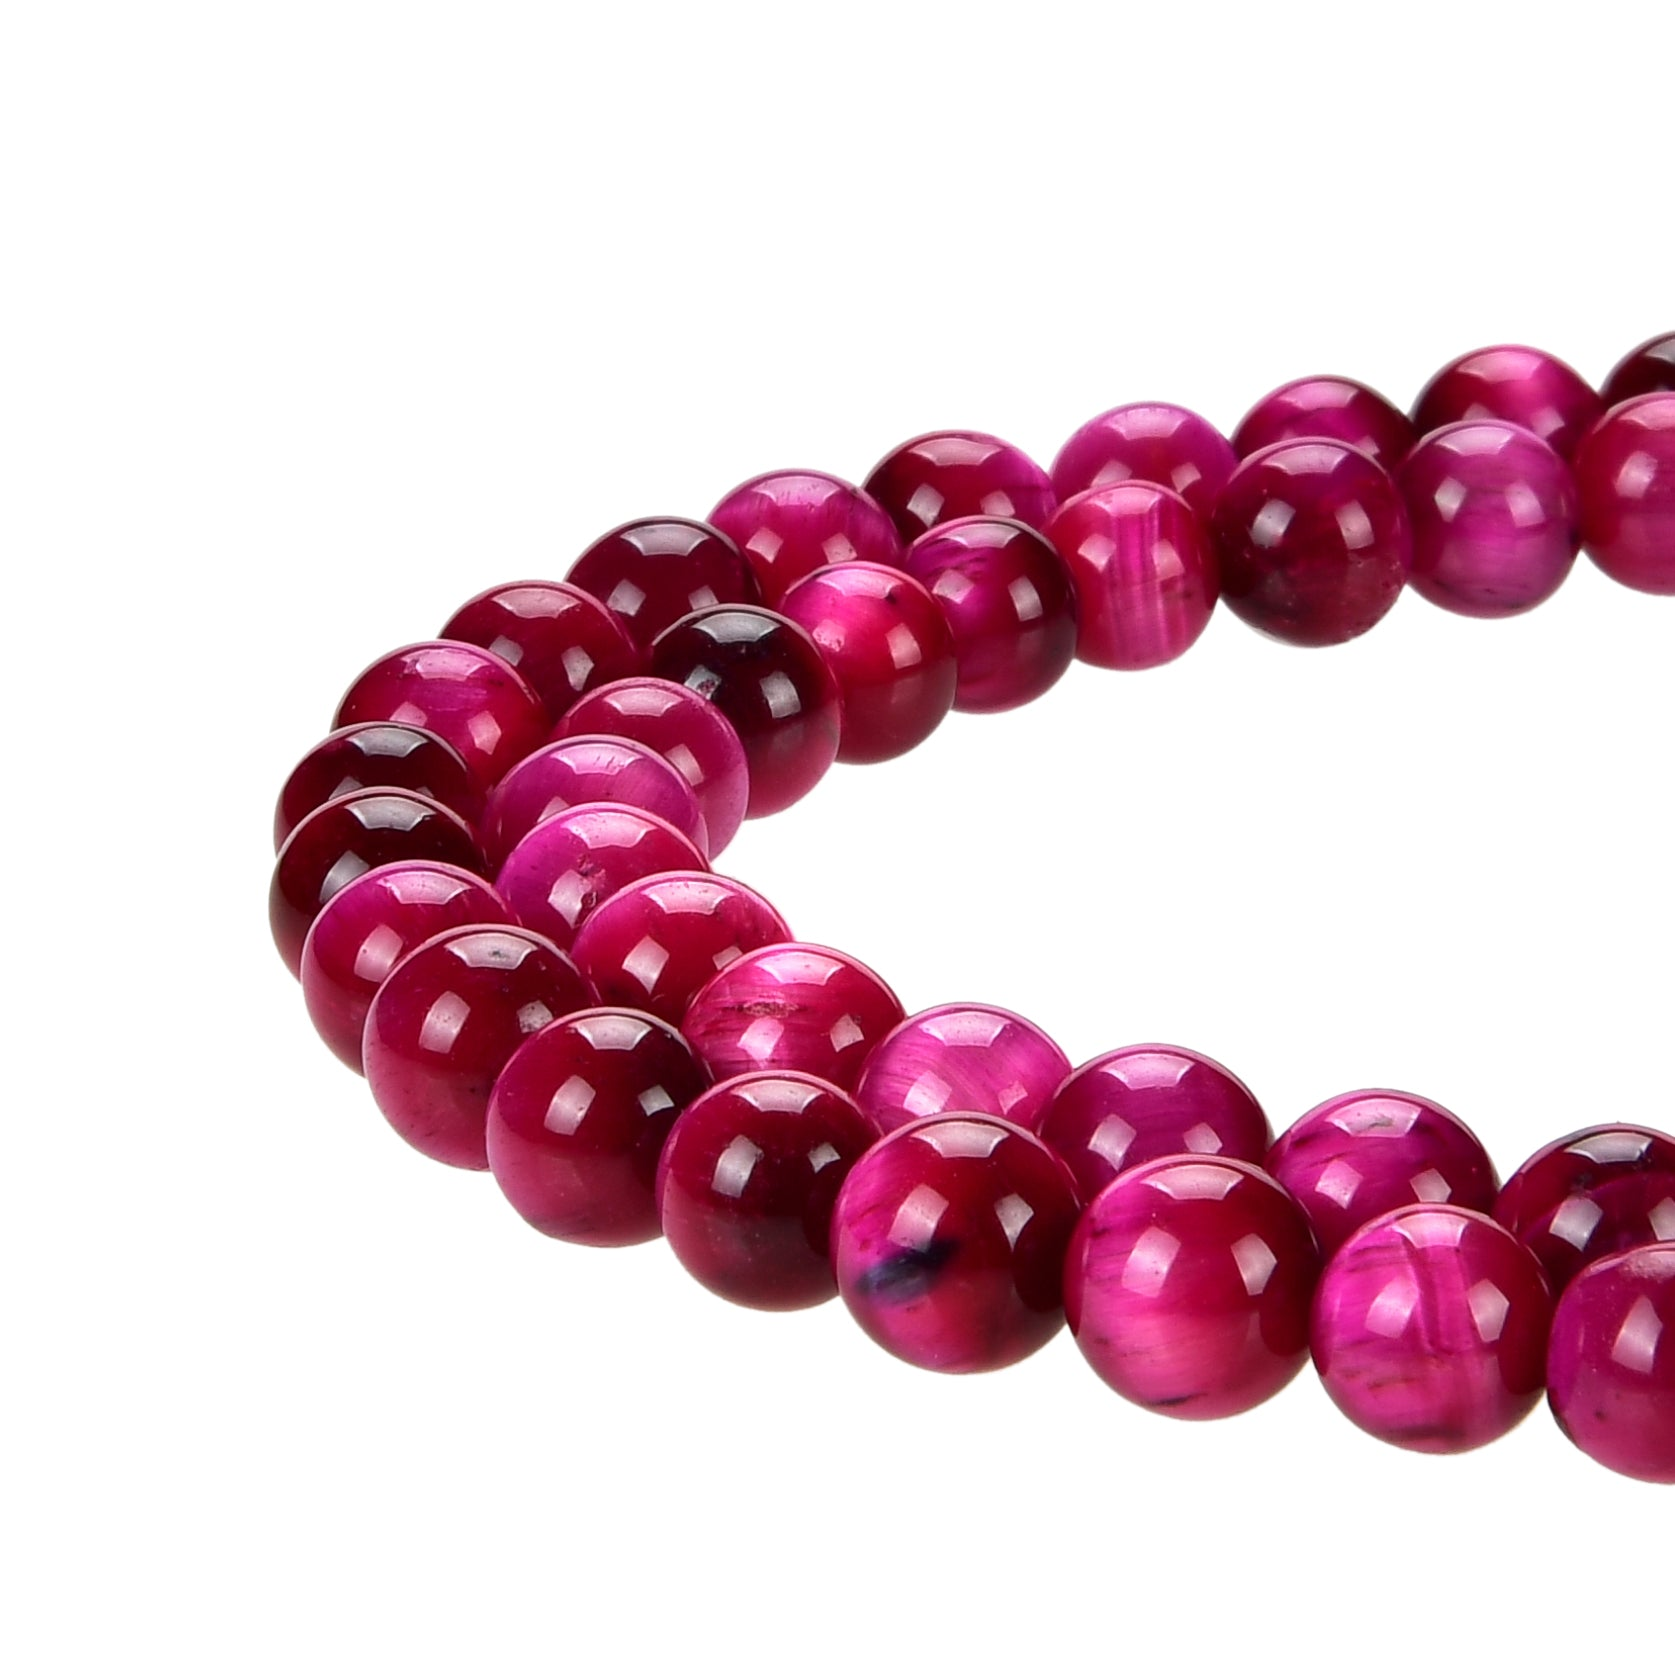 Red Tiger Eye Gemstone Beads Round